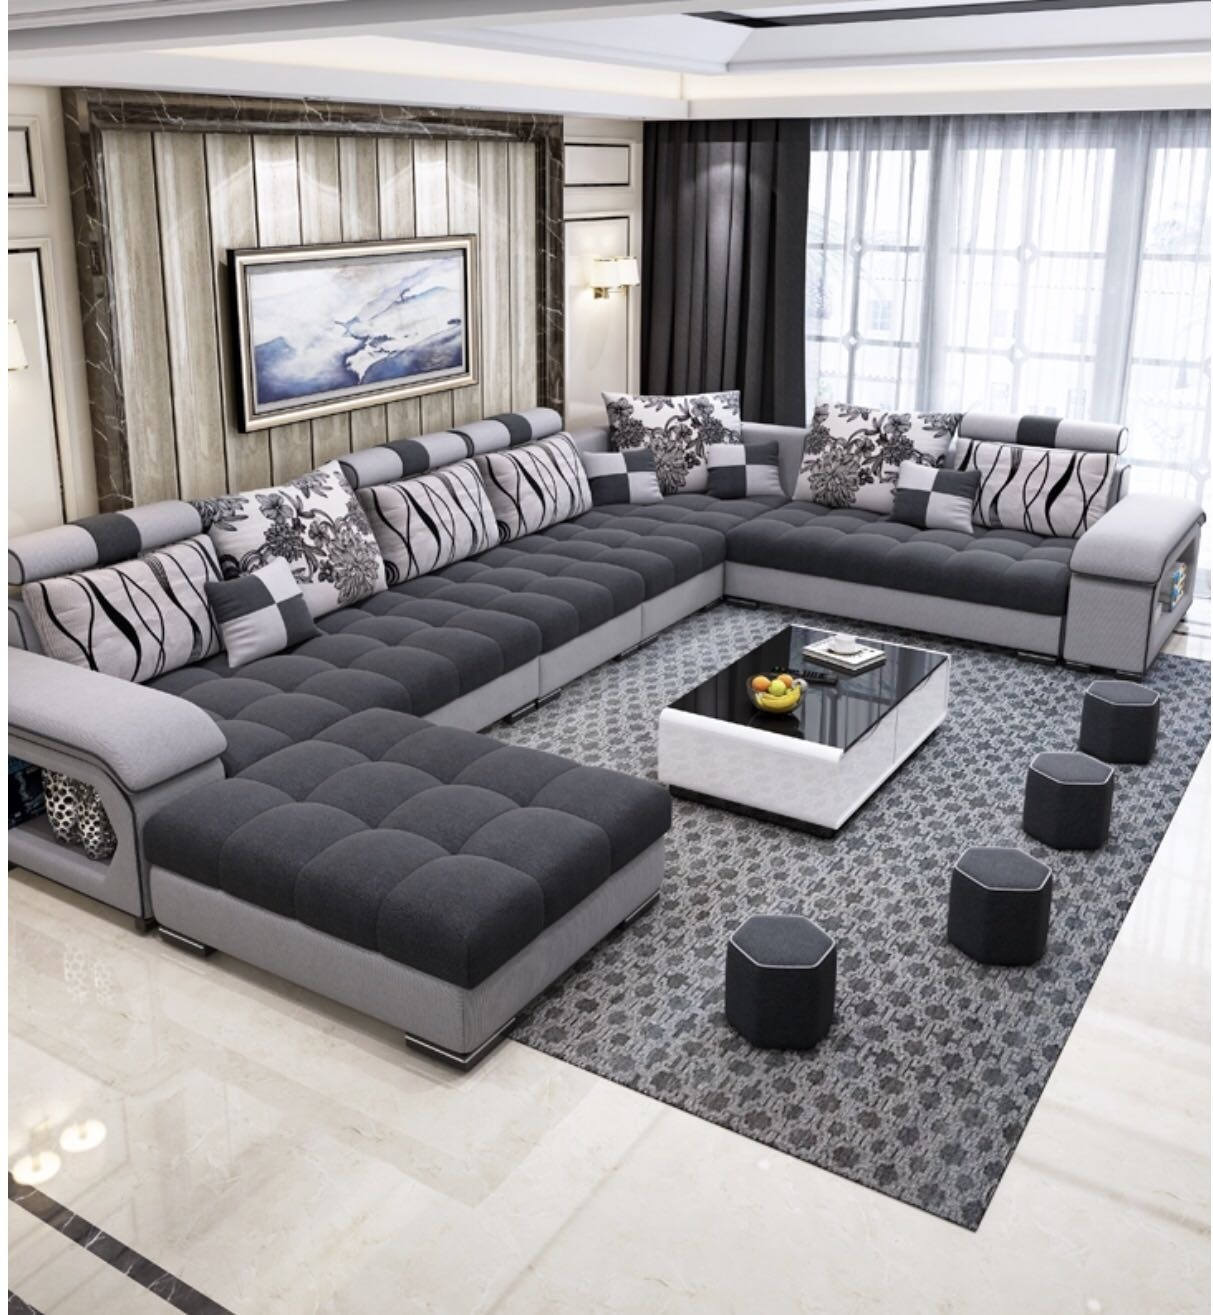 Image of: Furniture Factory Provided Living Room Sofas Fabric Sofa Bed Royal Sofa Set 7 Seater Living Room Furniture Designs View Living Room Sofas Shiquanyoupin Product Details From Shenzhen Shiquan Youpin Home Trading Co Ltd